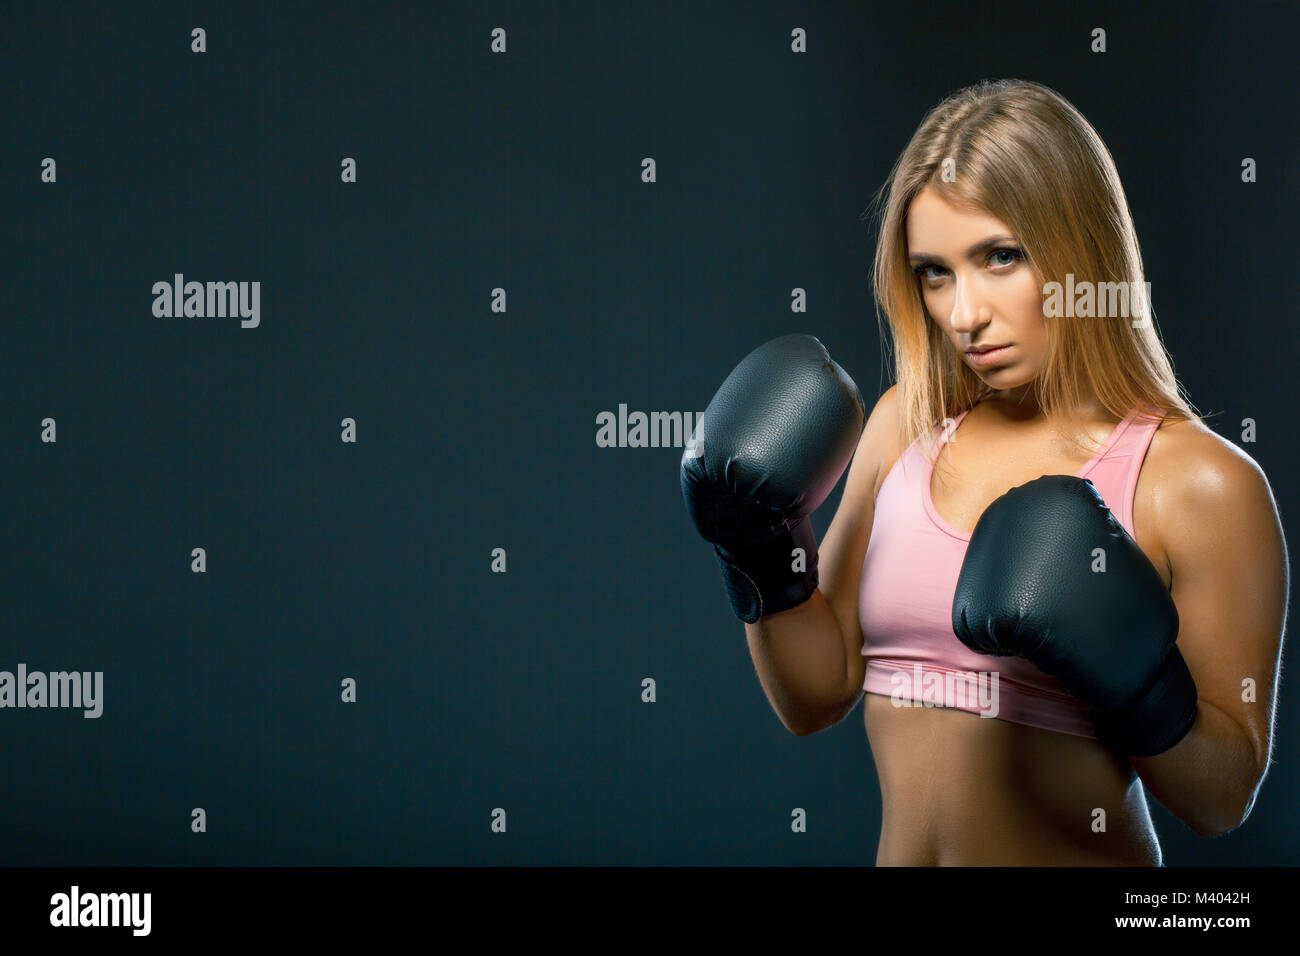 Side view of a gorgeous young woman in pink tank top is wearing large boxing gloves and standing on dark background. - Stock Image